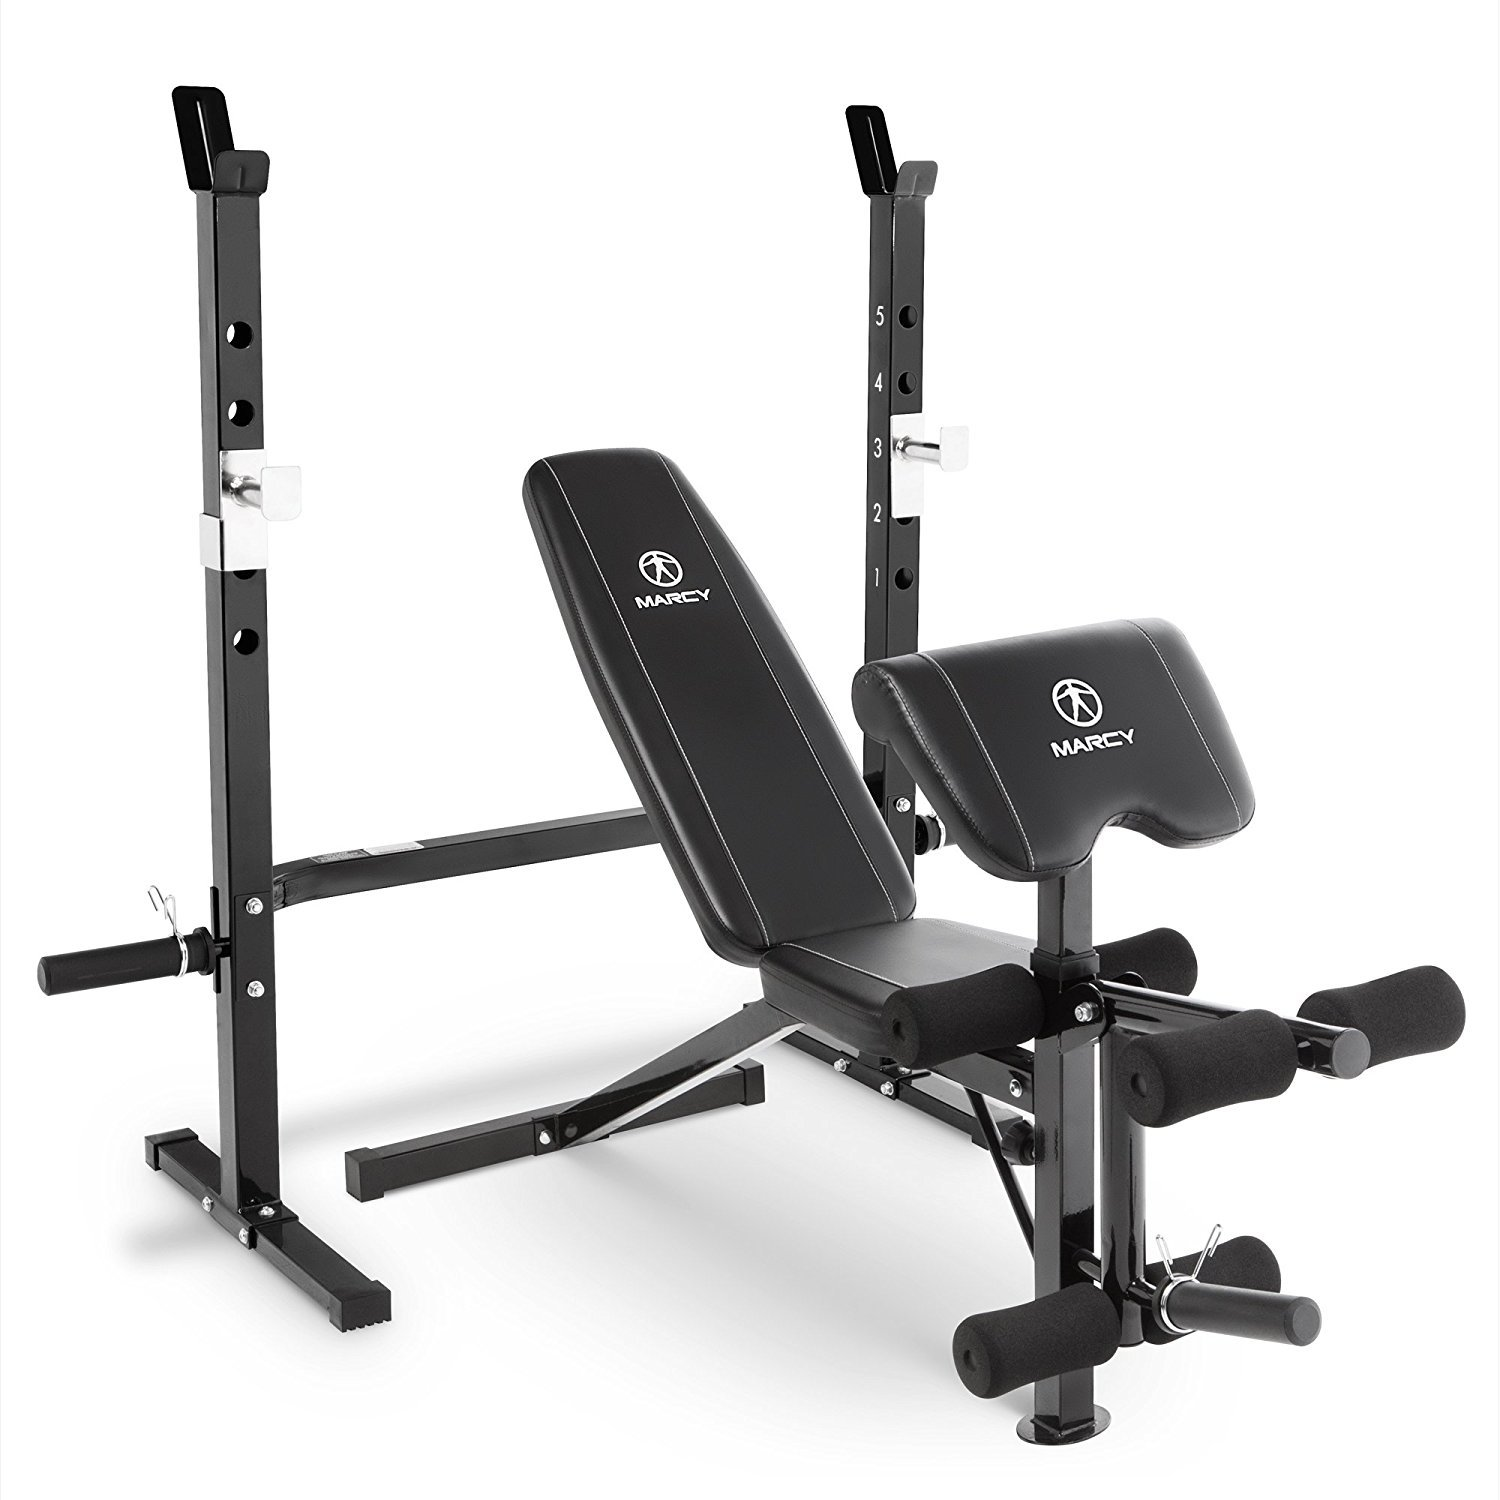 Marcy 2-Pc Olympic Weight Bench with bar Catches, Leg Developer & Preacher Curl Pad MWB-60205 by Marcy